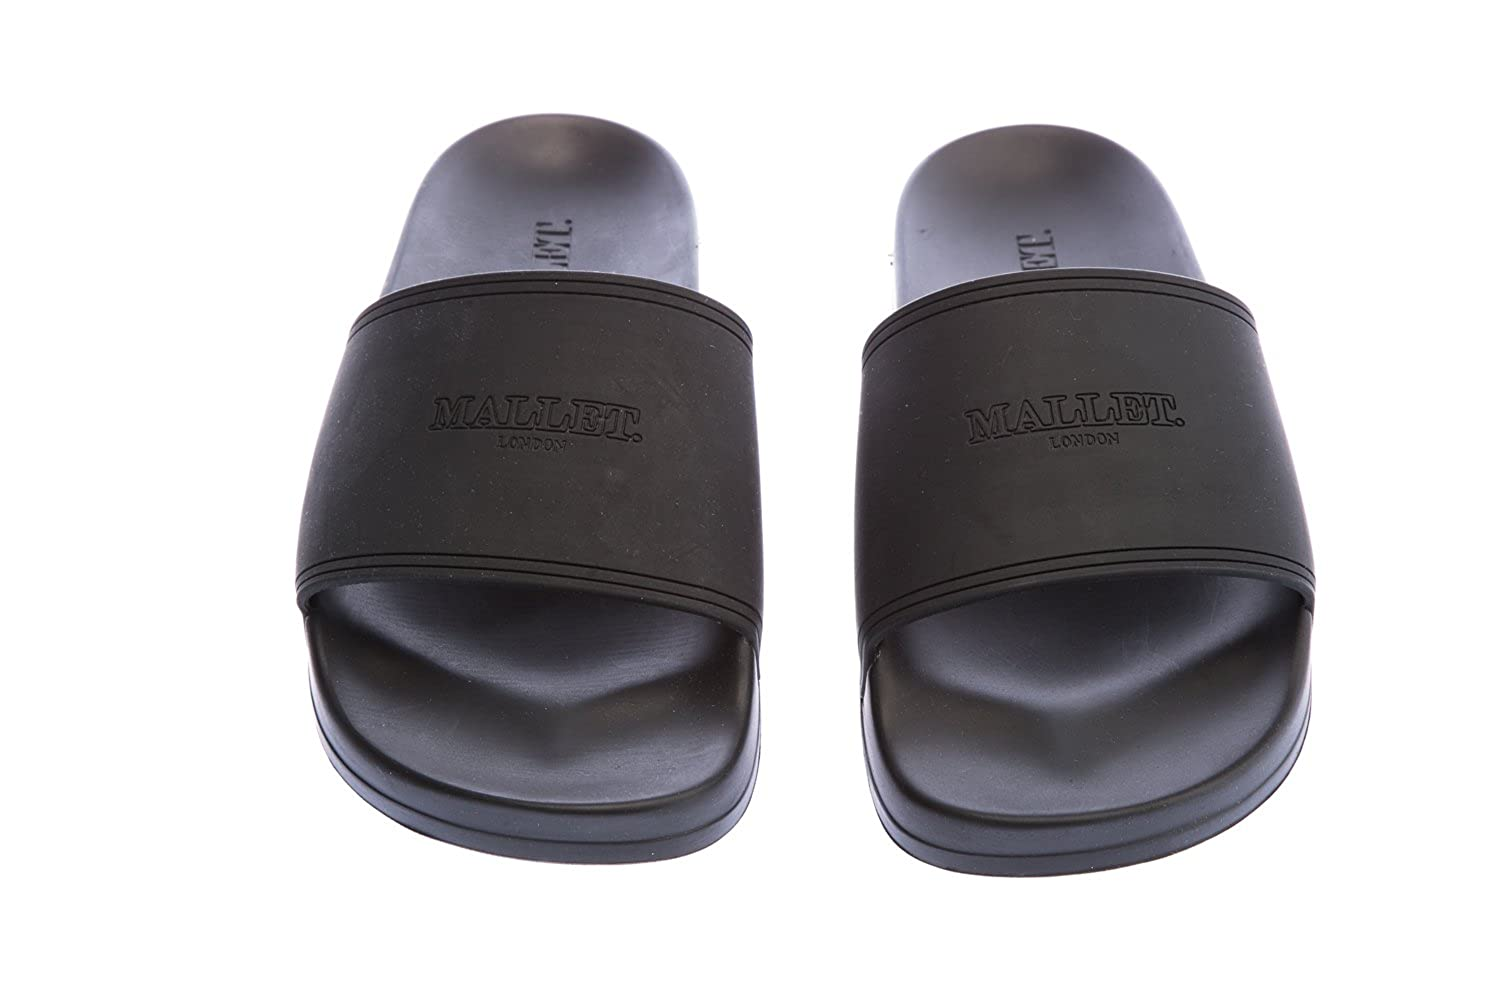 0880b5e95f9305 Mallet Slides in Black 10 UK  Amazon.co.uk  Clothing